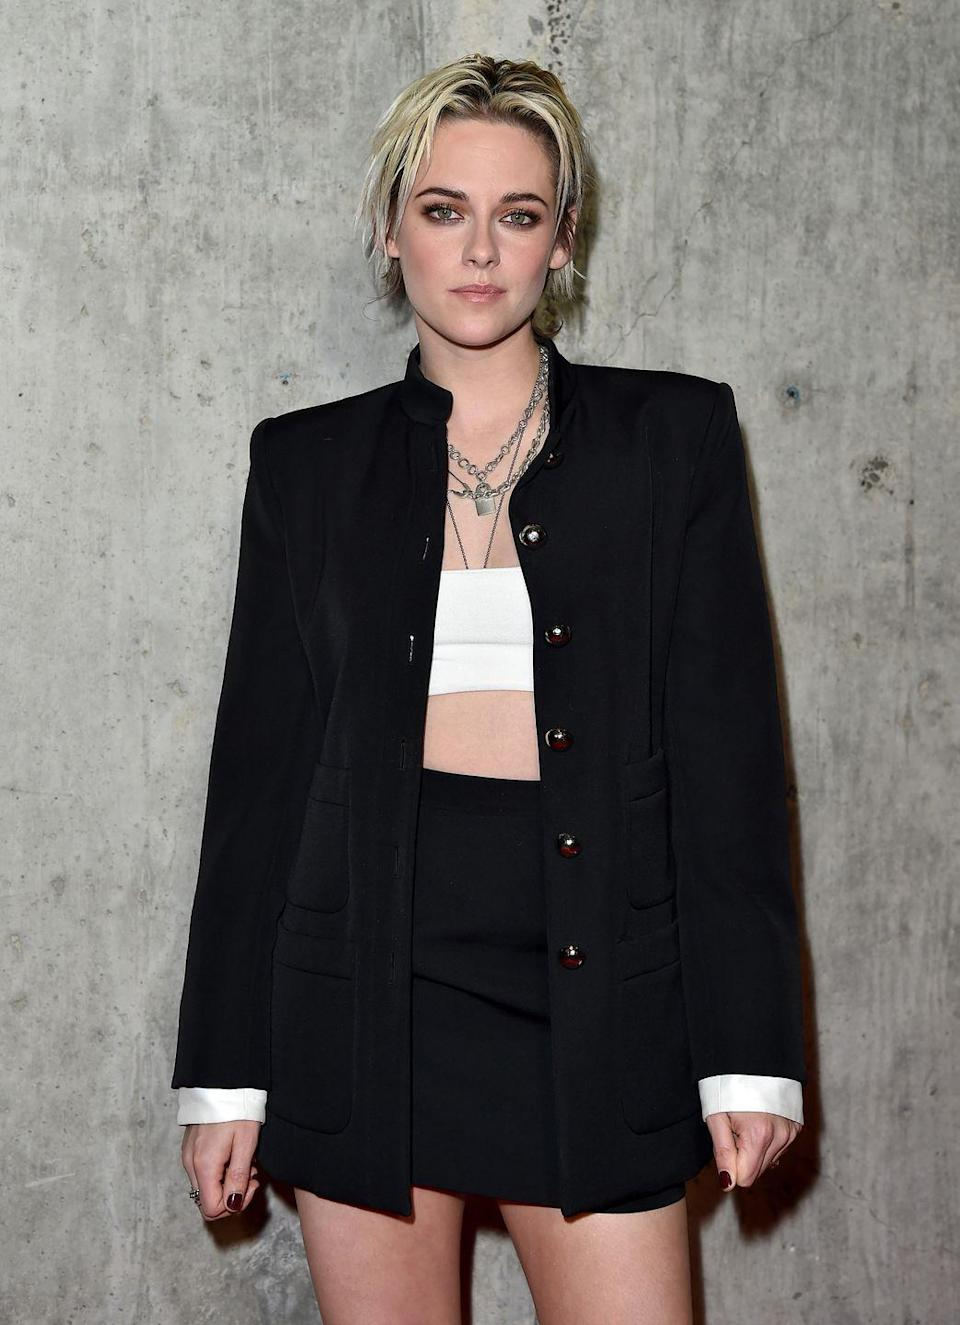 <p>It's safe to say that, today, Stewart seems much more at ease with herself. She chopped off her signature long brown hair, bleached it, started taking on more roles in indie films, and came out as bisexual. Her style is more edgy and grown-up as well. </p>